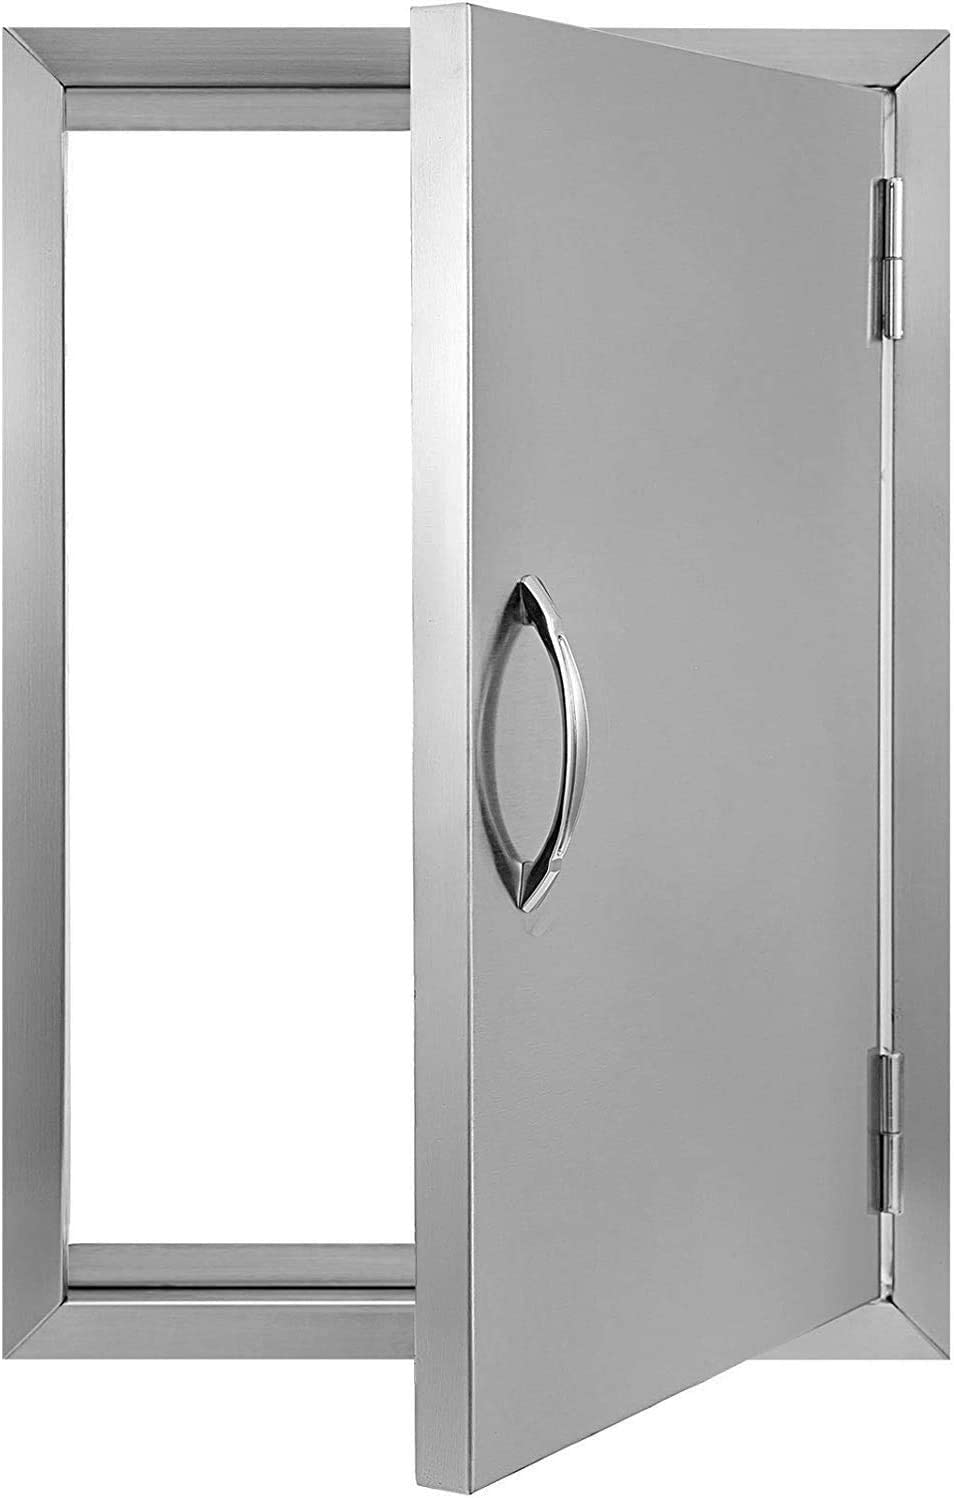 BBQ Access Door 17W x 24H BBQ Island Door Brushed Stainless Steel Perfect for Outdoor Kitchen or BBQ Island (17W x 24H)